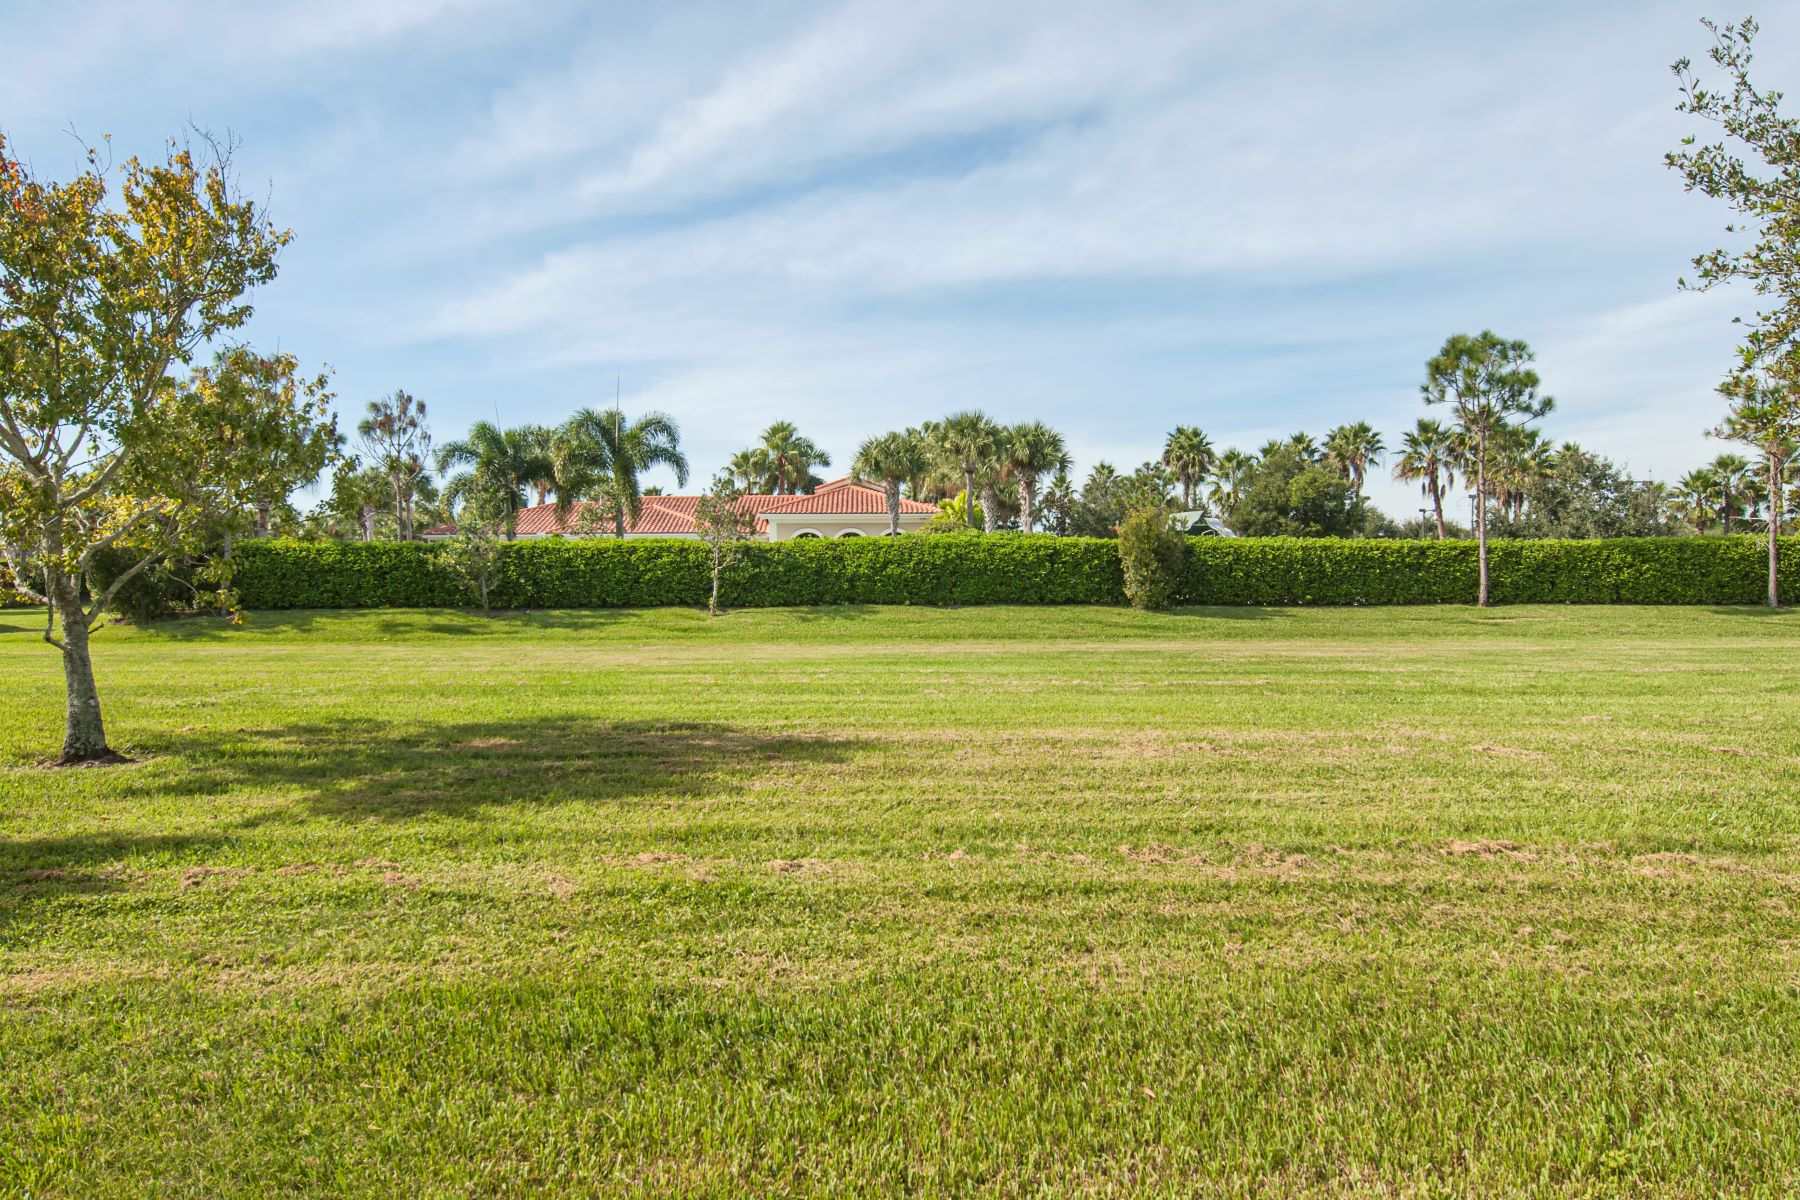 Additional photo for property listing at 5545 45th Avenue Vero Beach, Florida 32967 United States